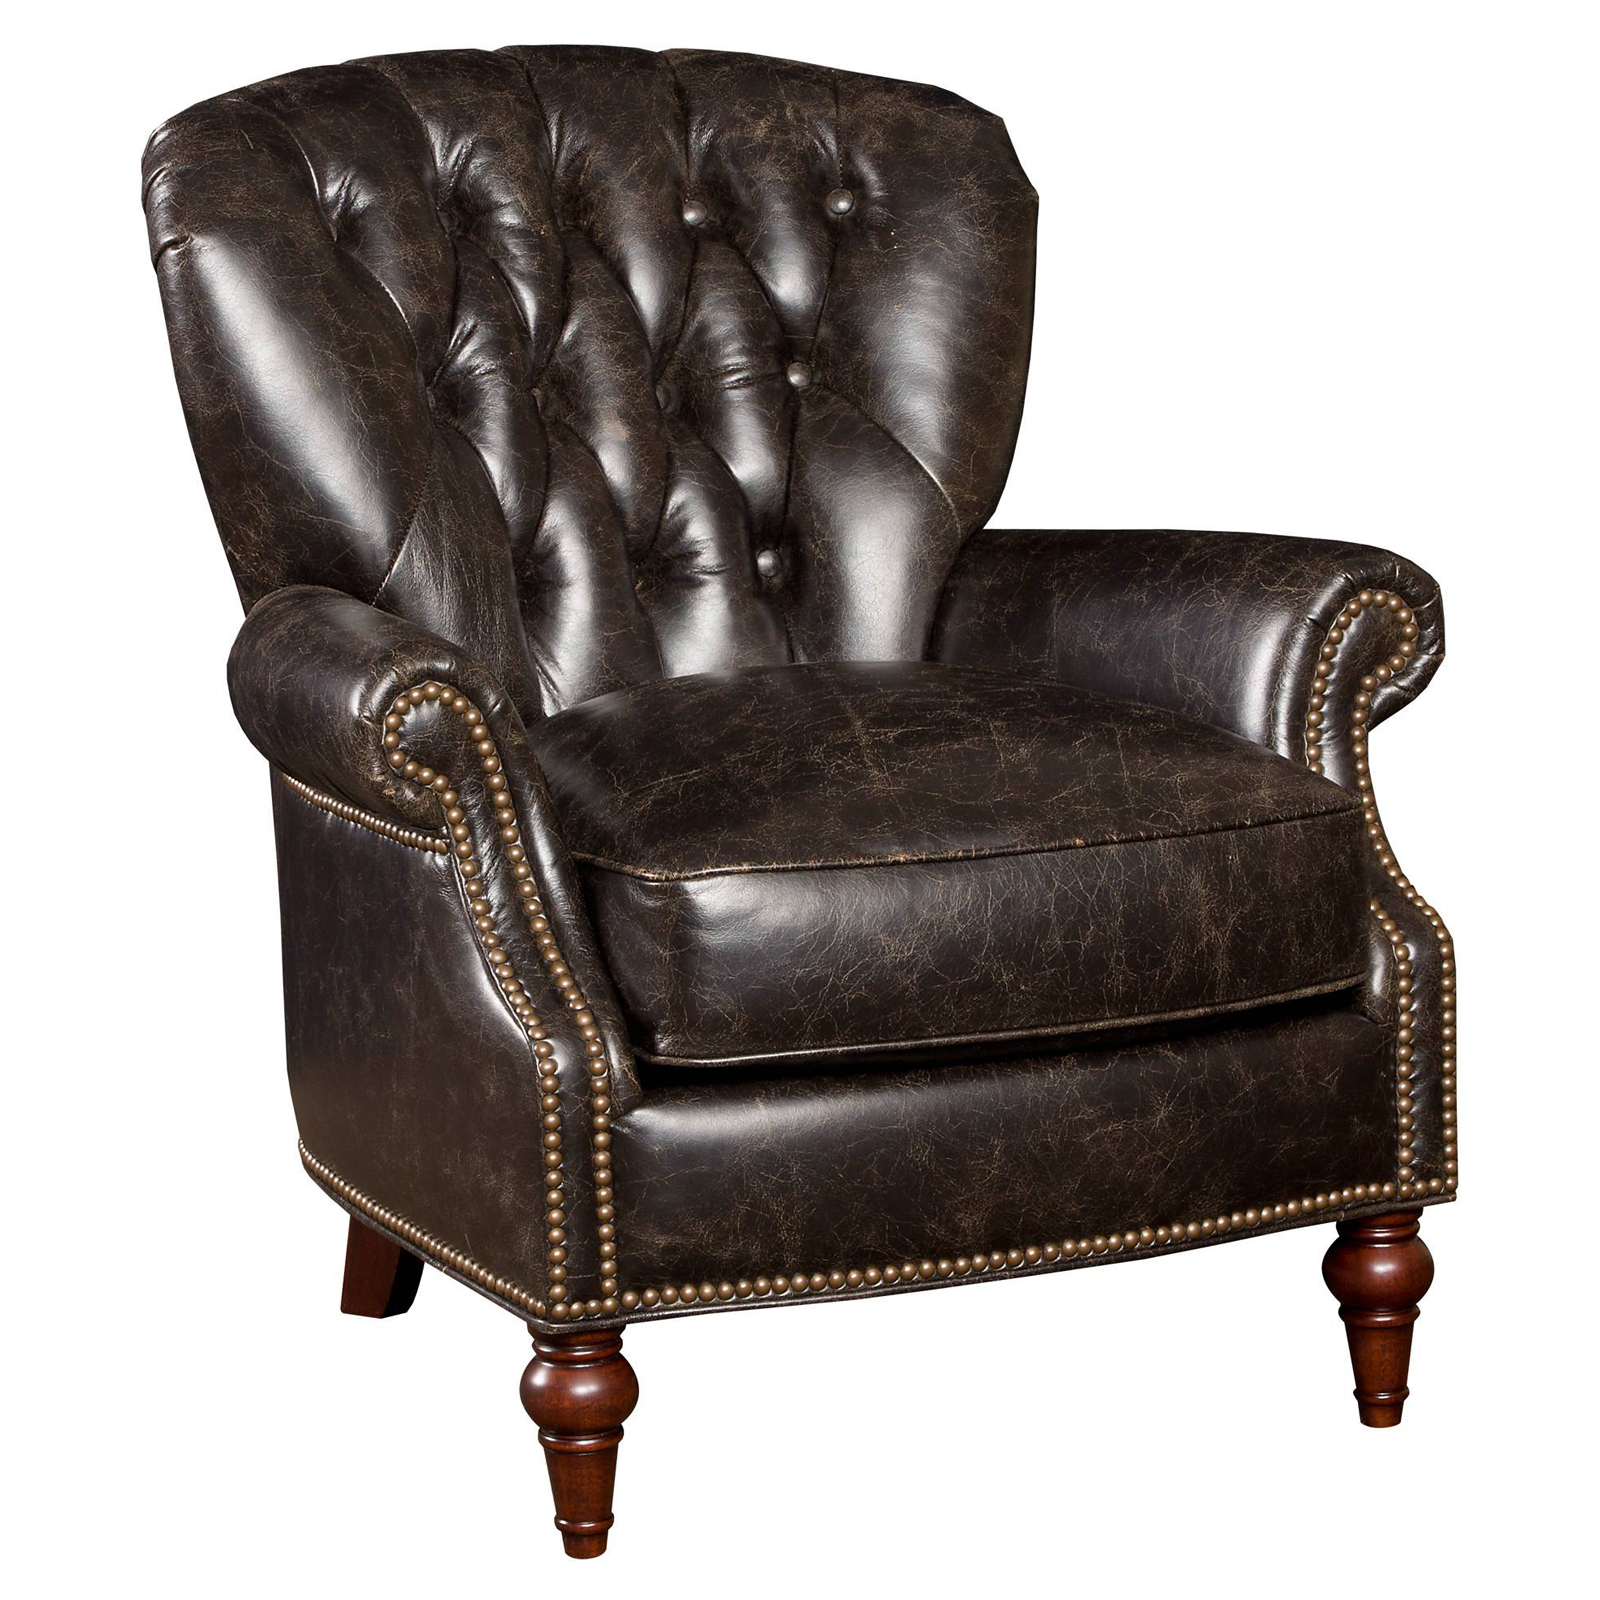 Leather Club Chair Hooker Furniture Pullman Coach Leather Club Chair Accent